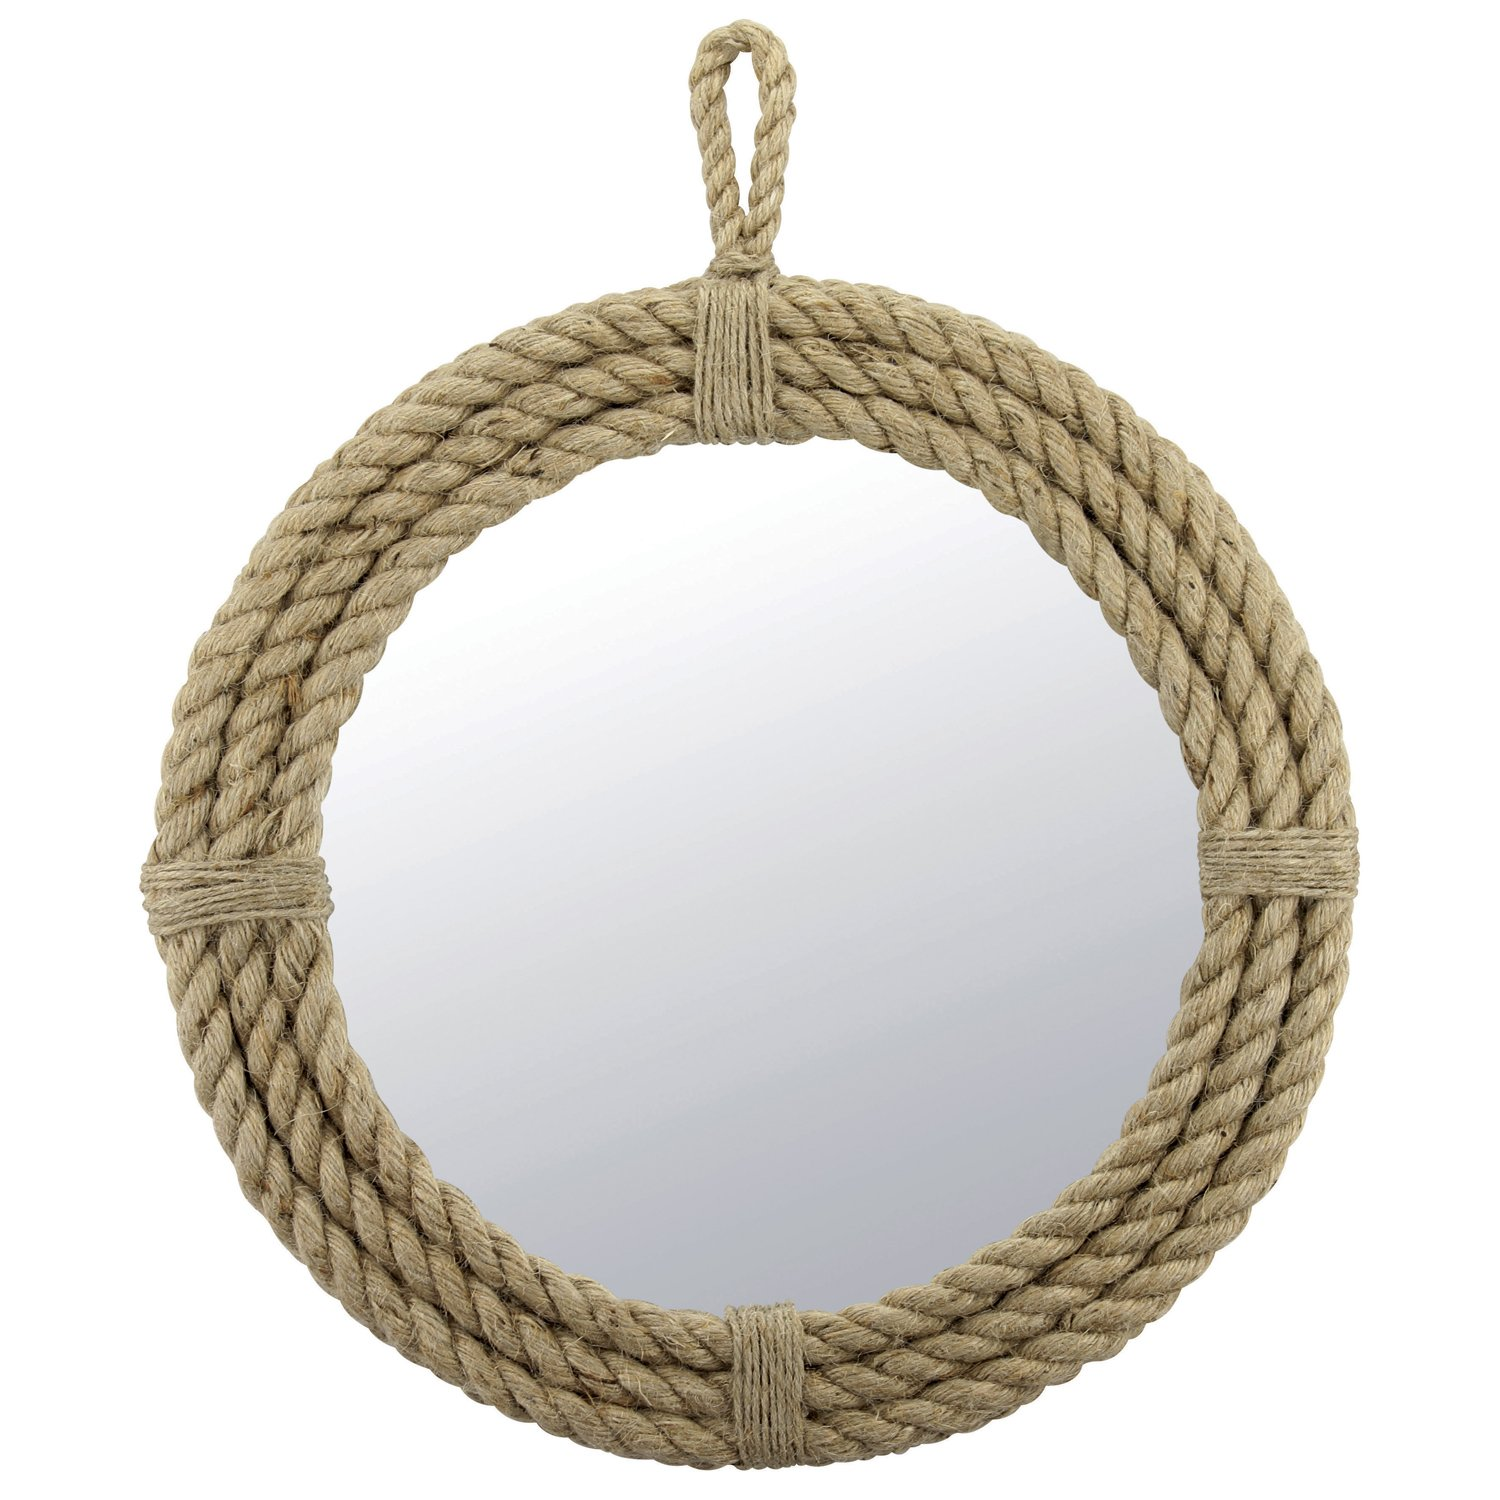 Stonebriar Small Round Wrapped Rope Mirror with Hanging Loop, Vintage Nautical Design